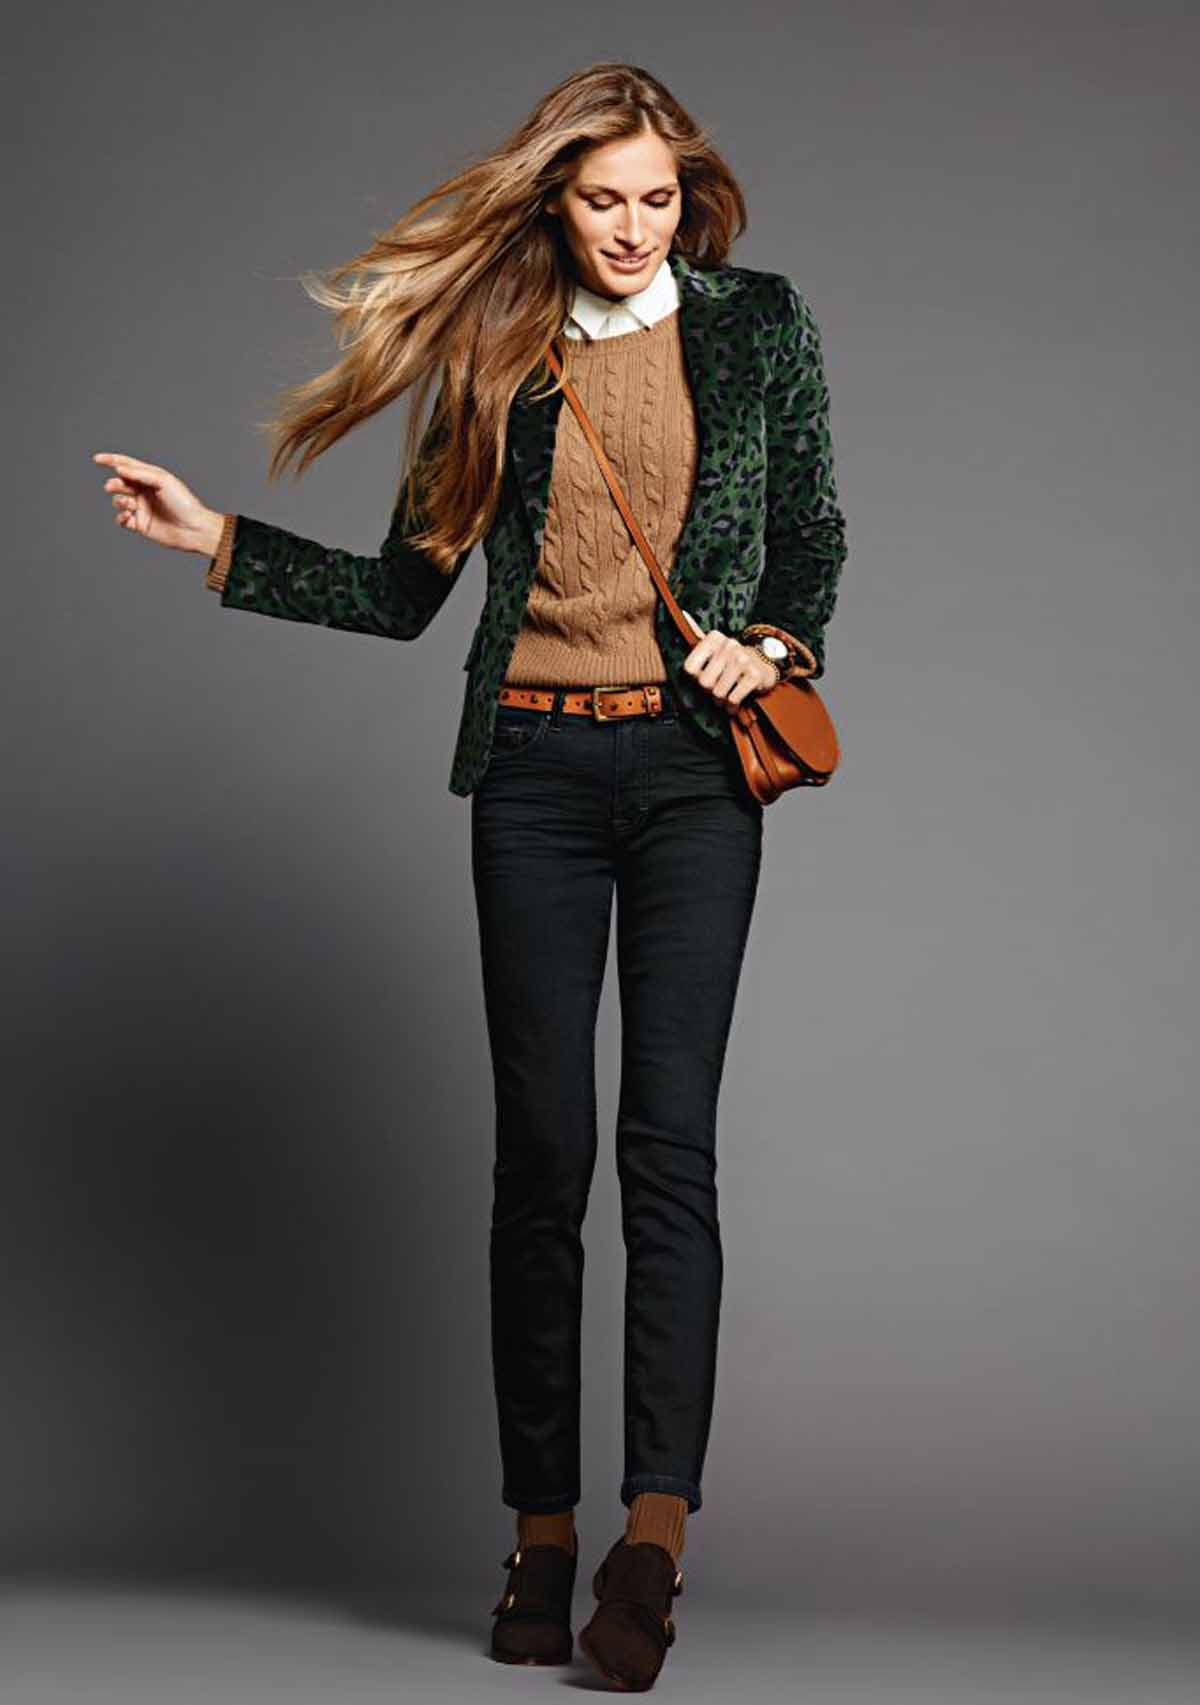 Model-Style Samt Outfit